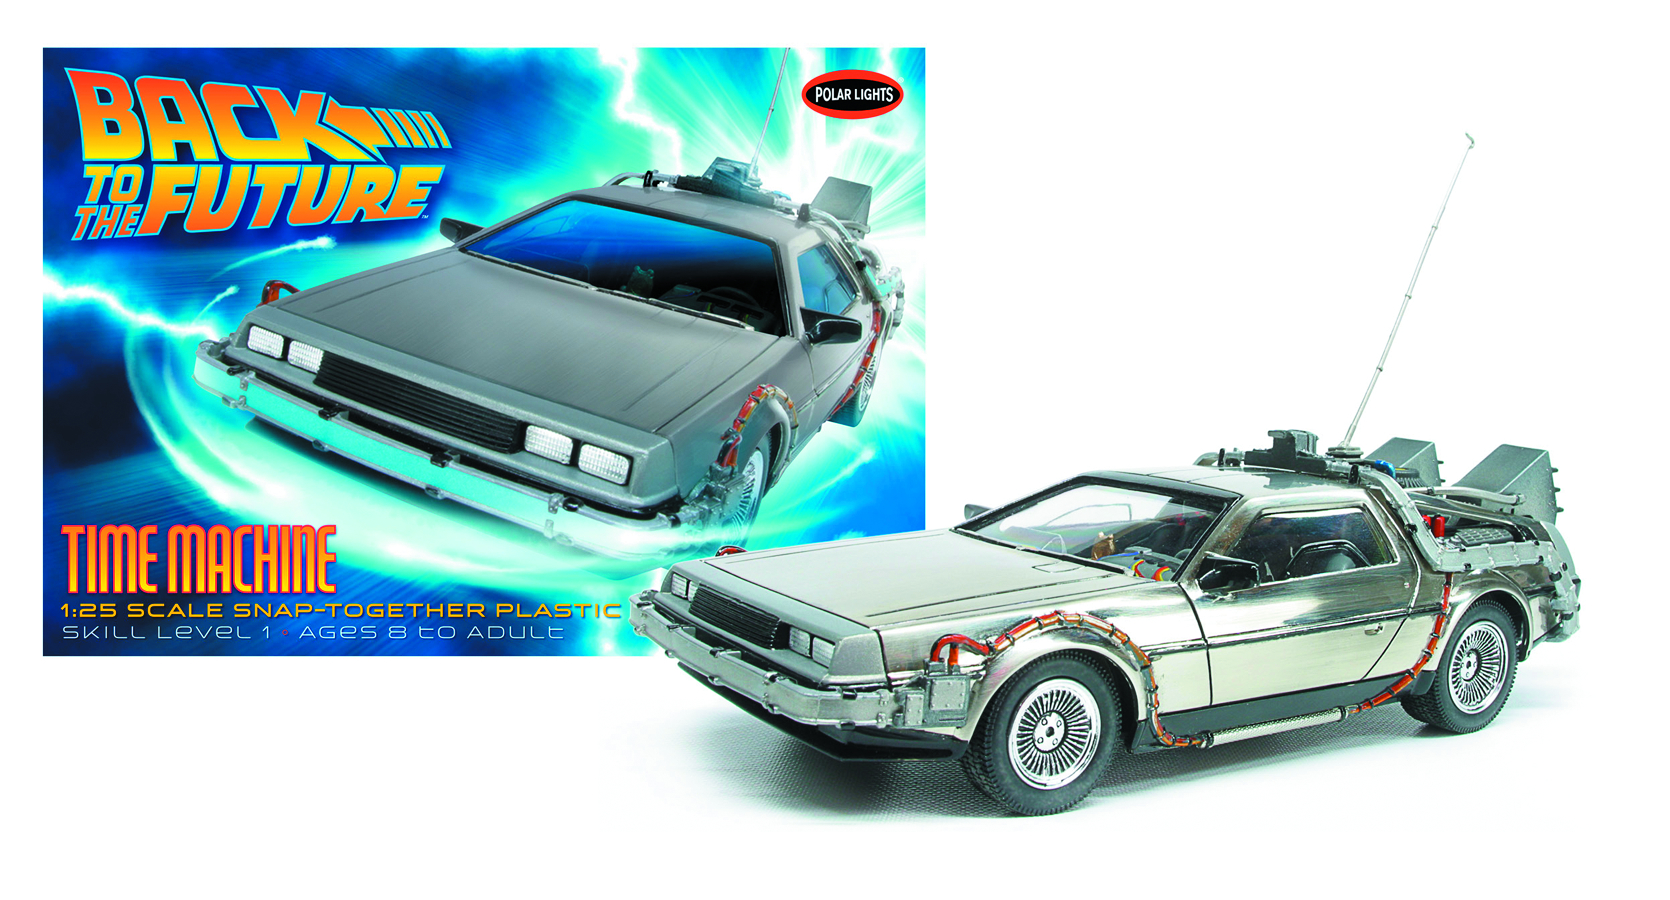 BTTF TIME MACHINE 1/25 SCALE MODEL KIT